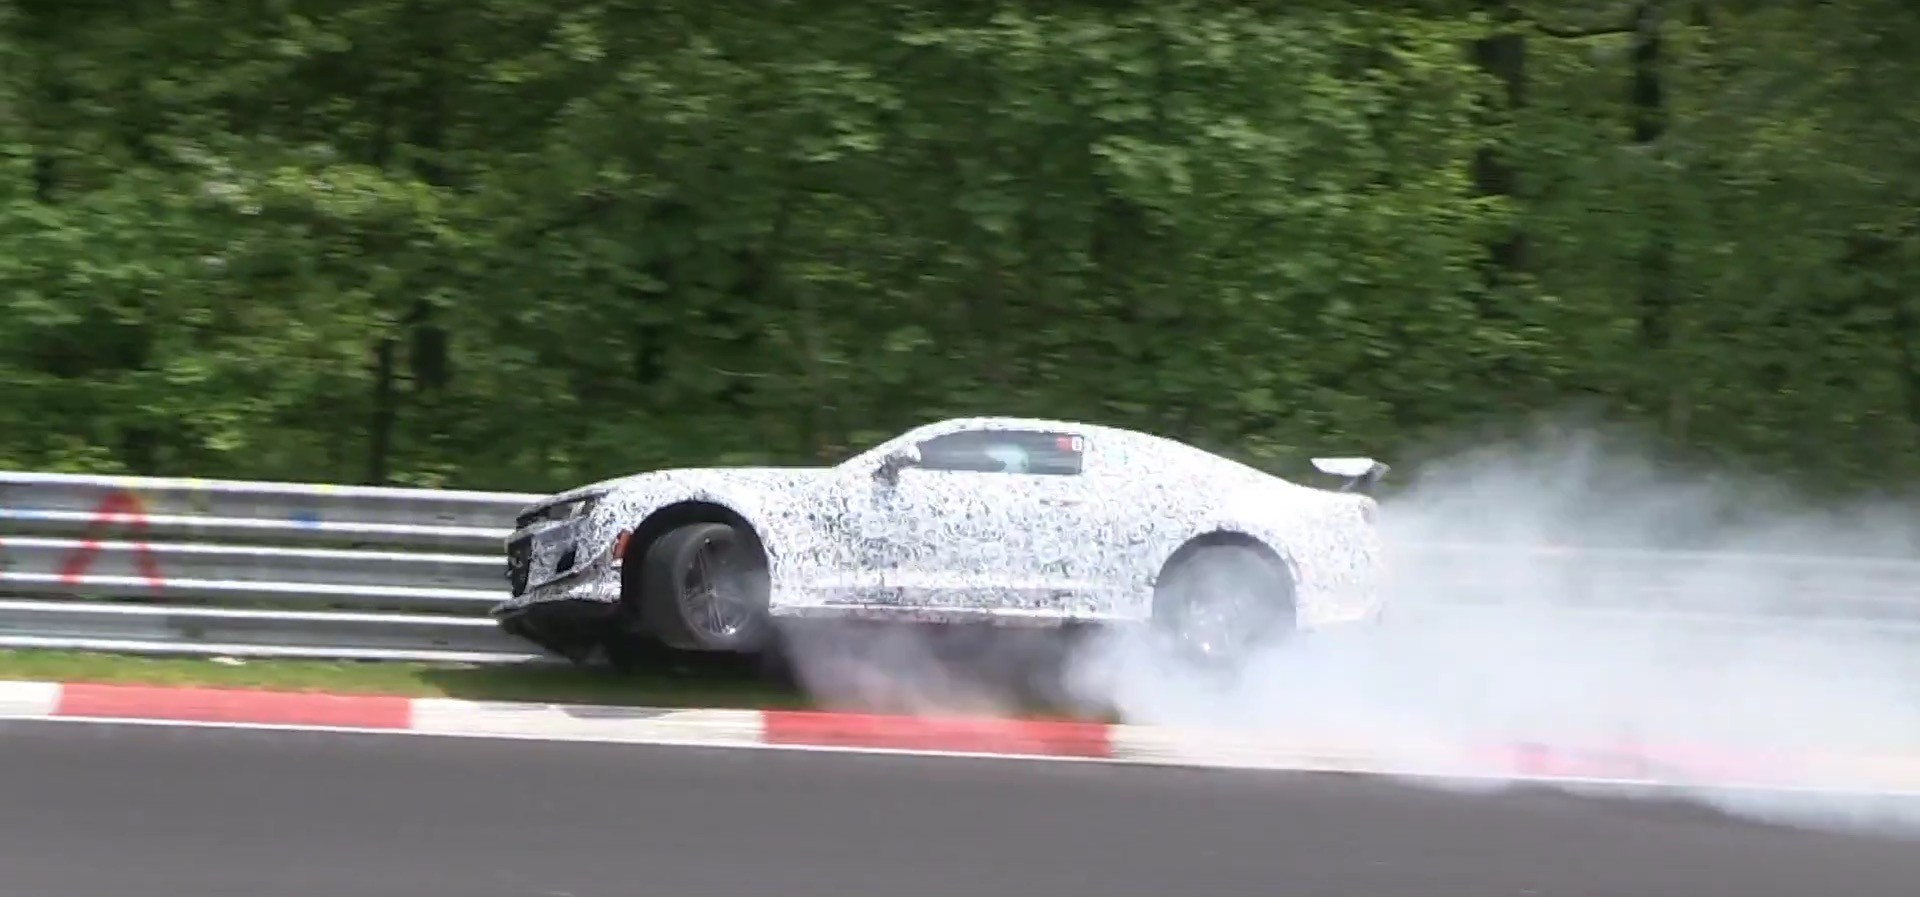 2018 Chevrolet Camaro Z 28 Crashes Hard At Adenauer Forst